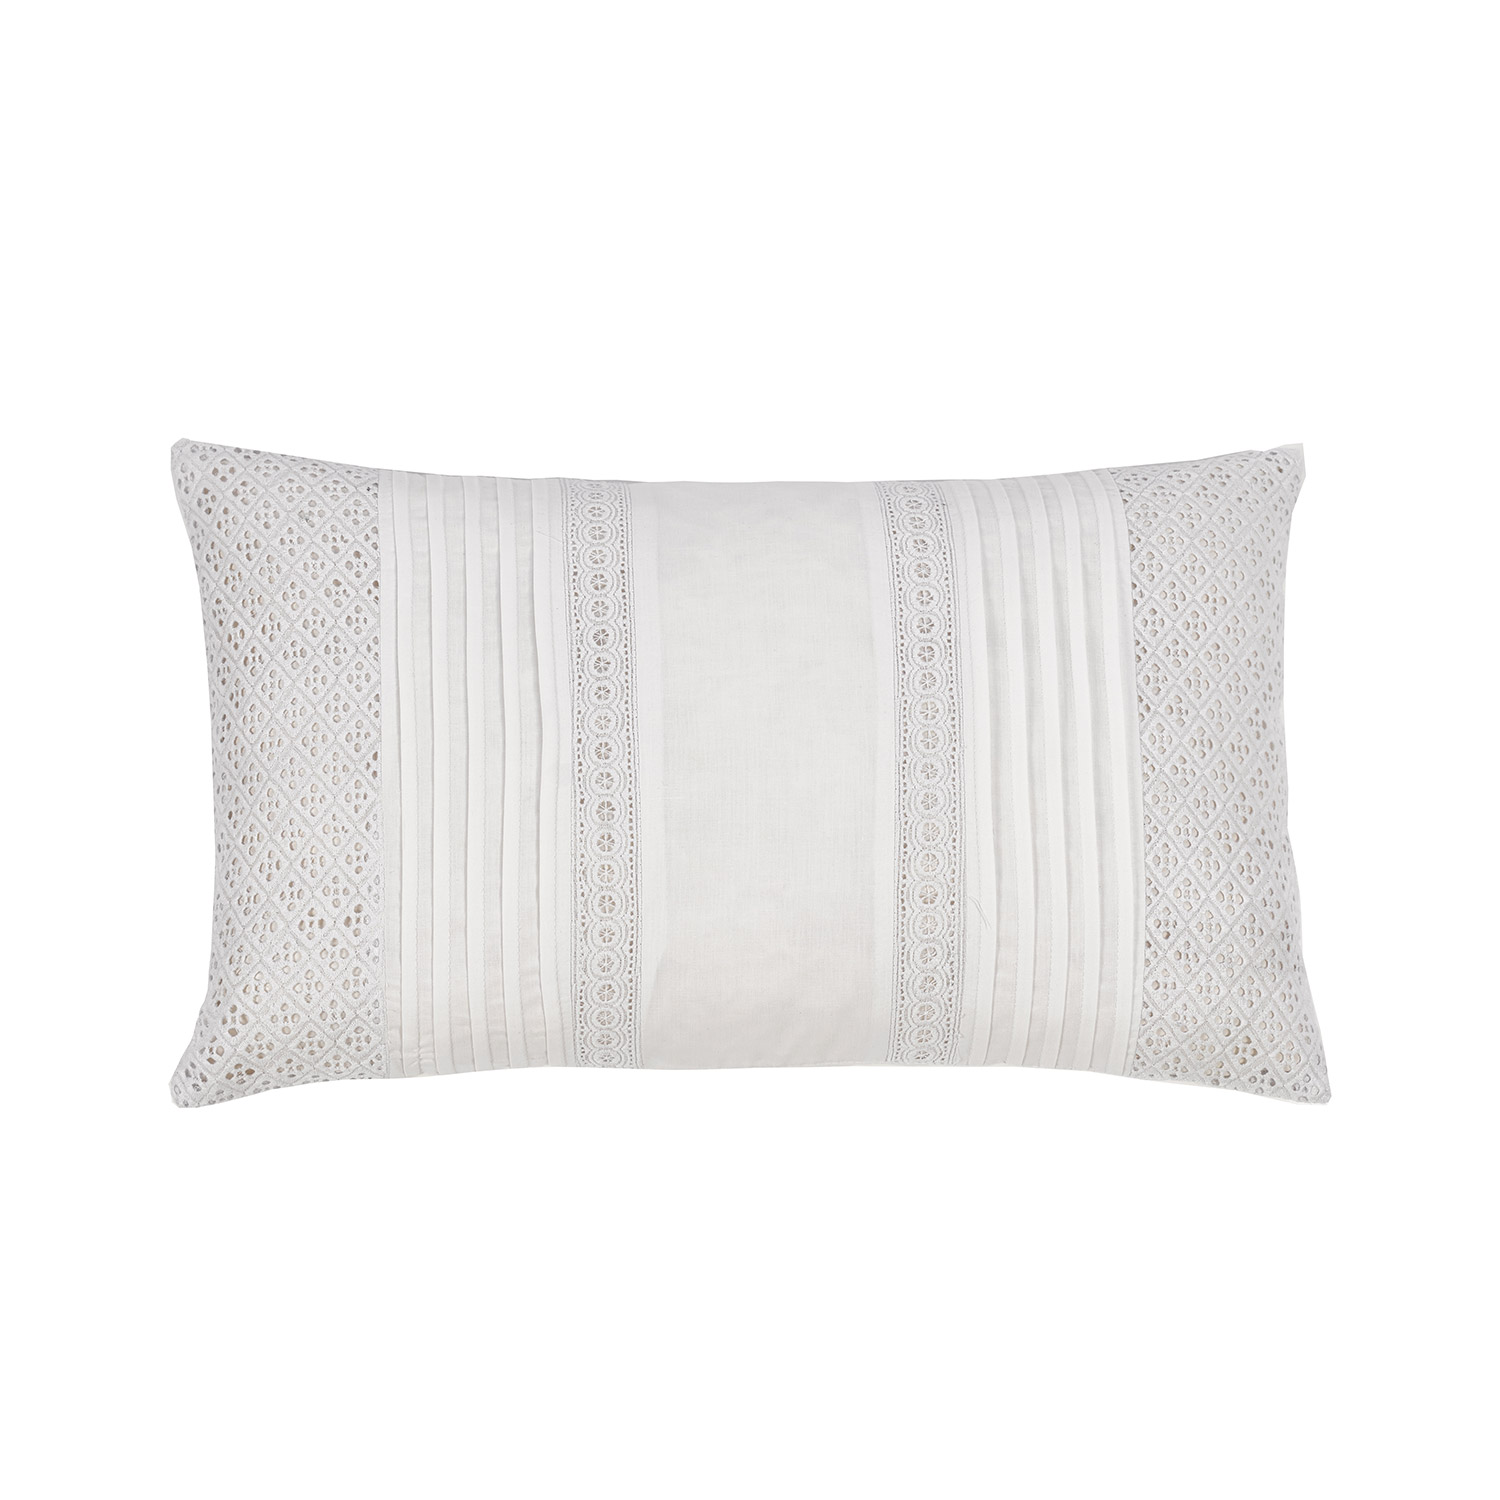 Cleo White Embroidered Luxury Filled Boudoir Cushion